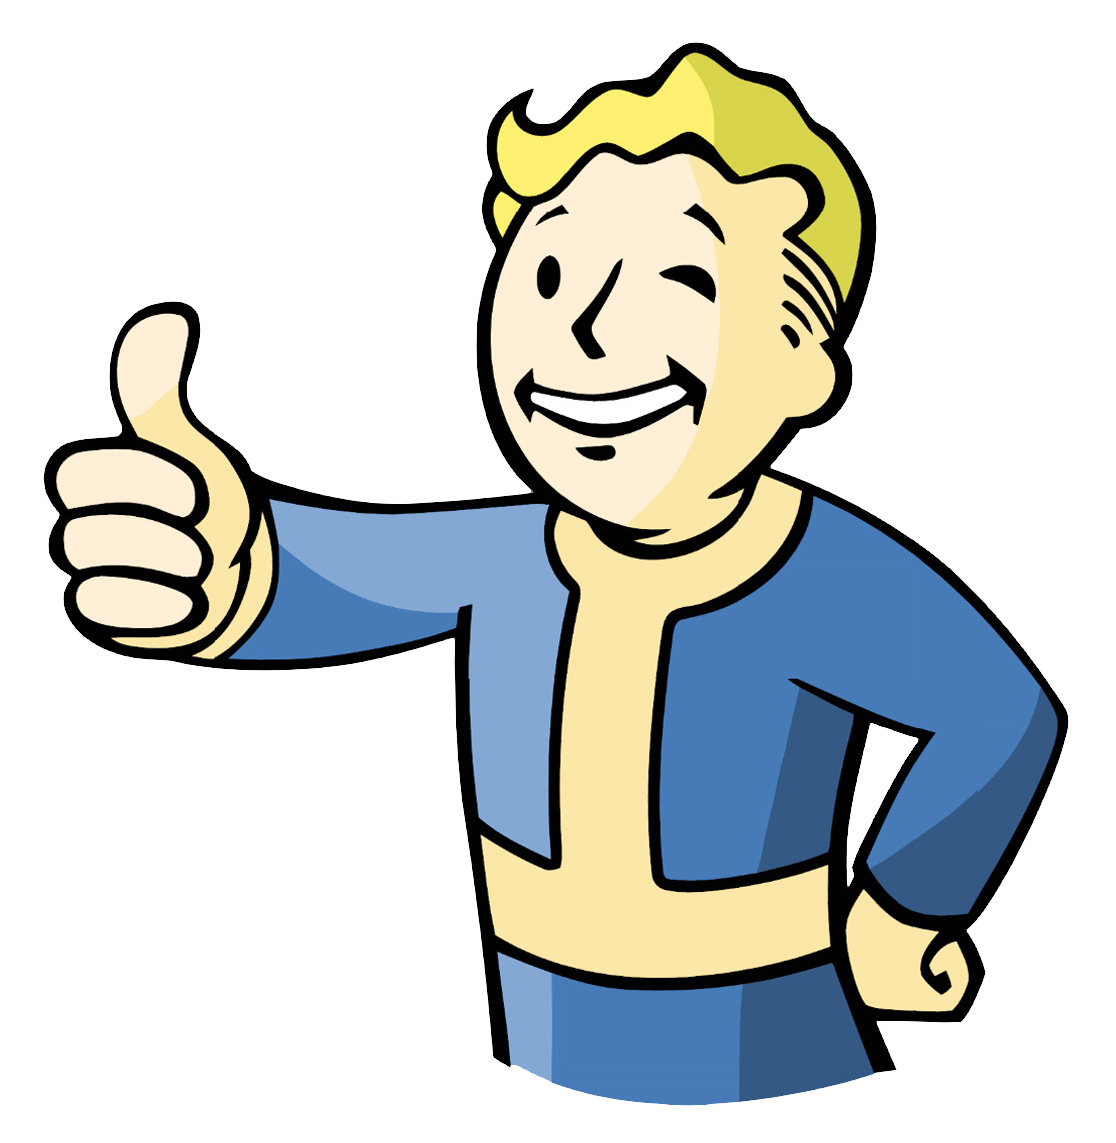 Fallout 3 other Vault Boy images - The Fallout wiki - Fallout: New ...